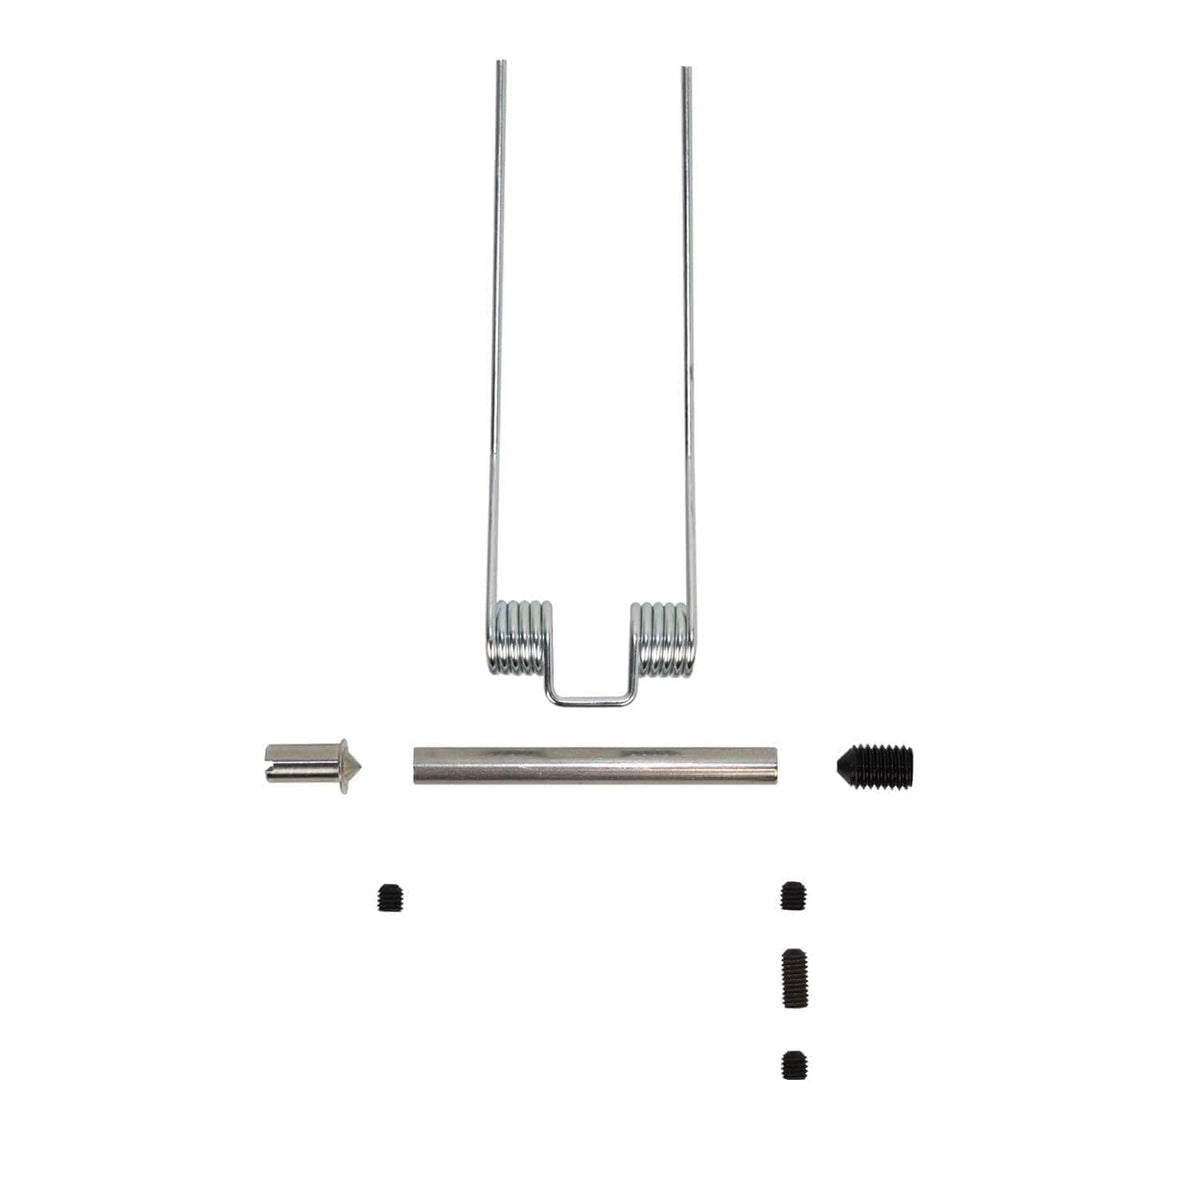 Lid hinge pin kits for use with post 1995 Aga range cookers 8mm lid hinge pin kit for a single lid